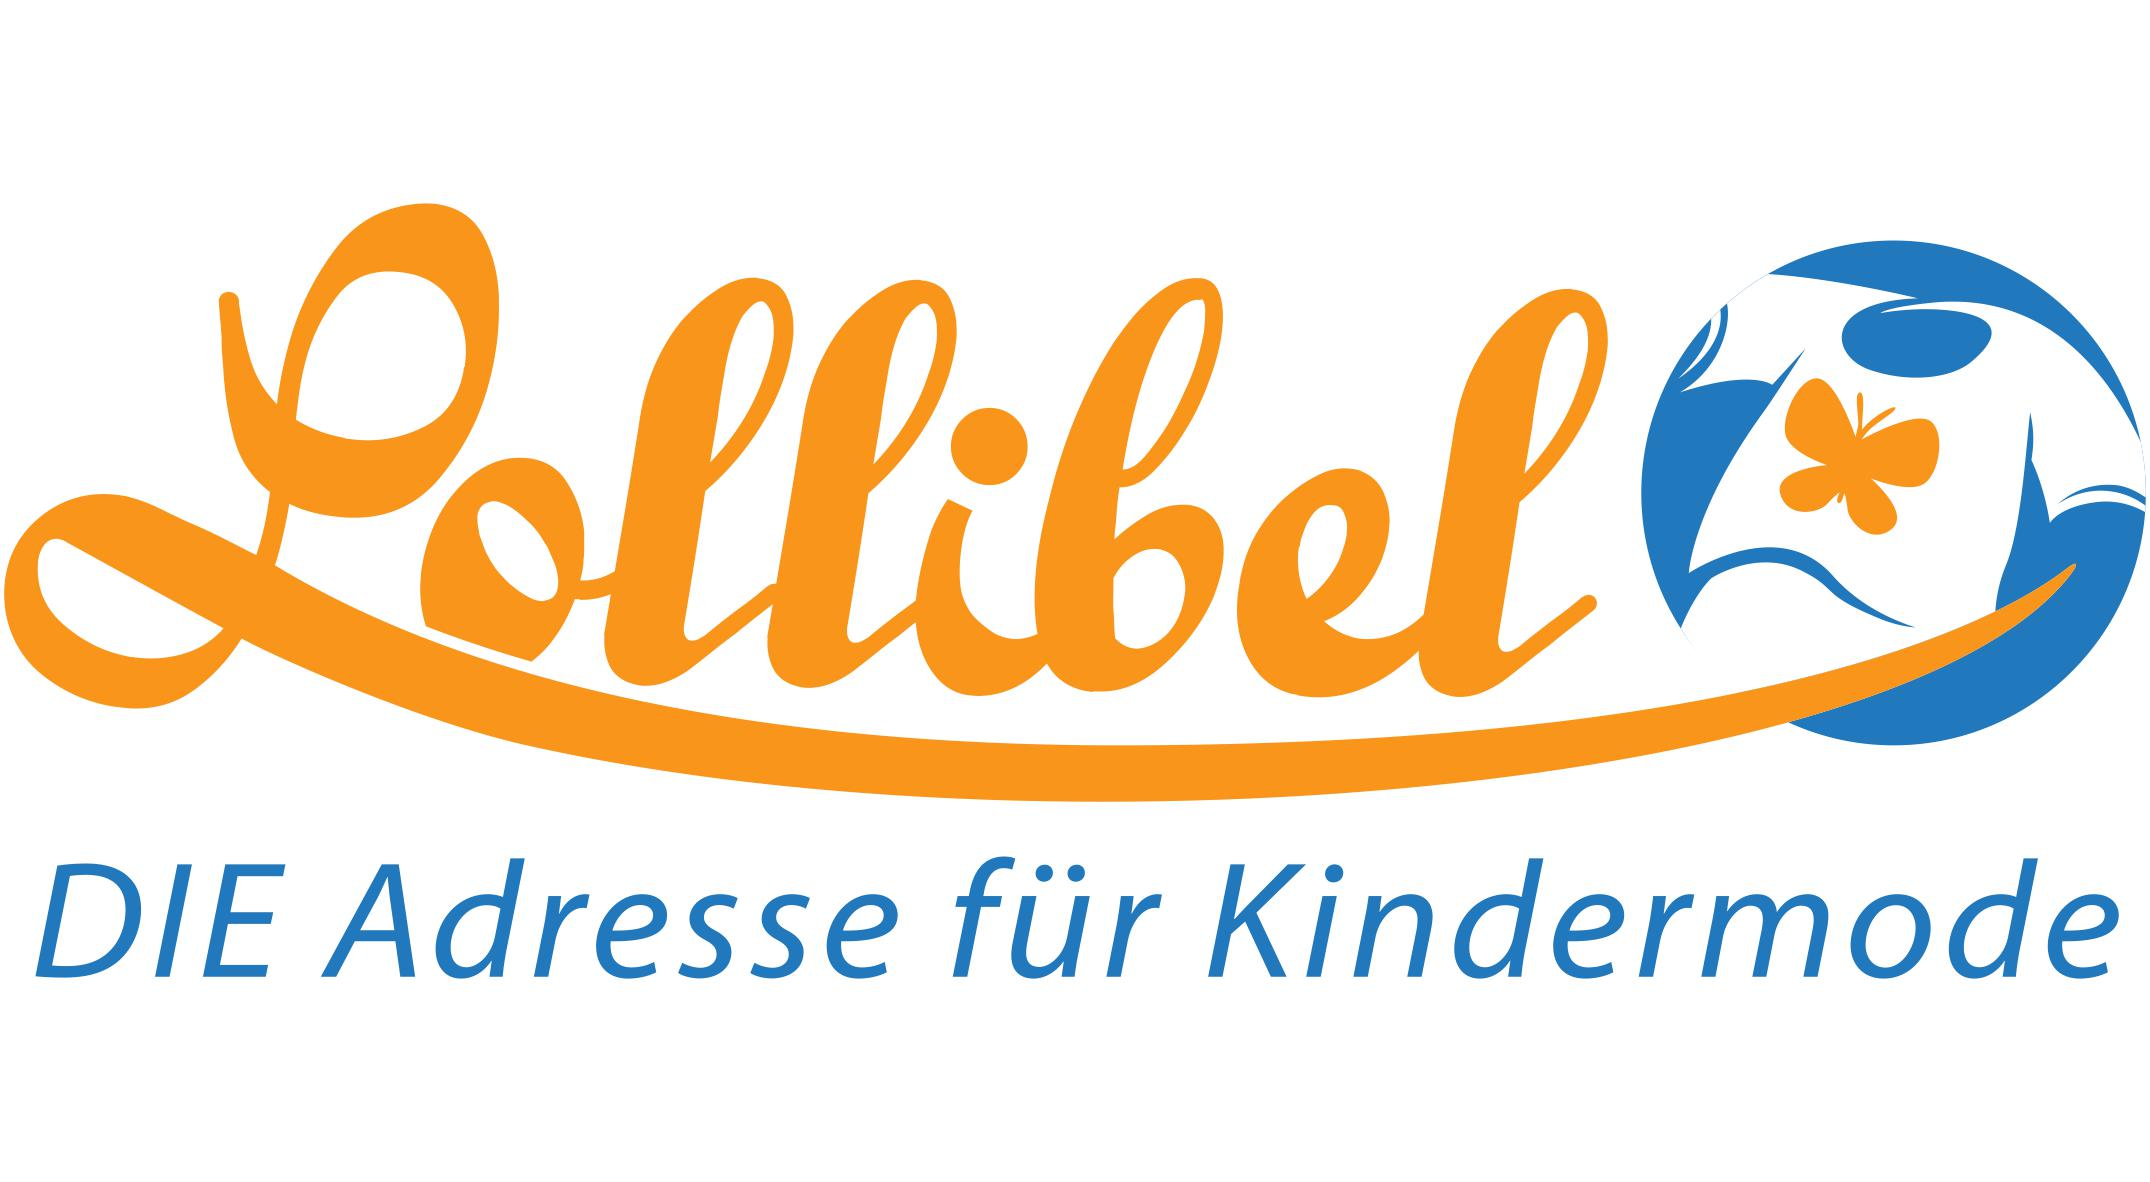 Lollibel Kindermode